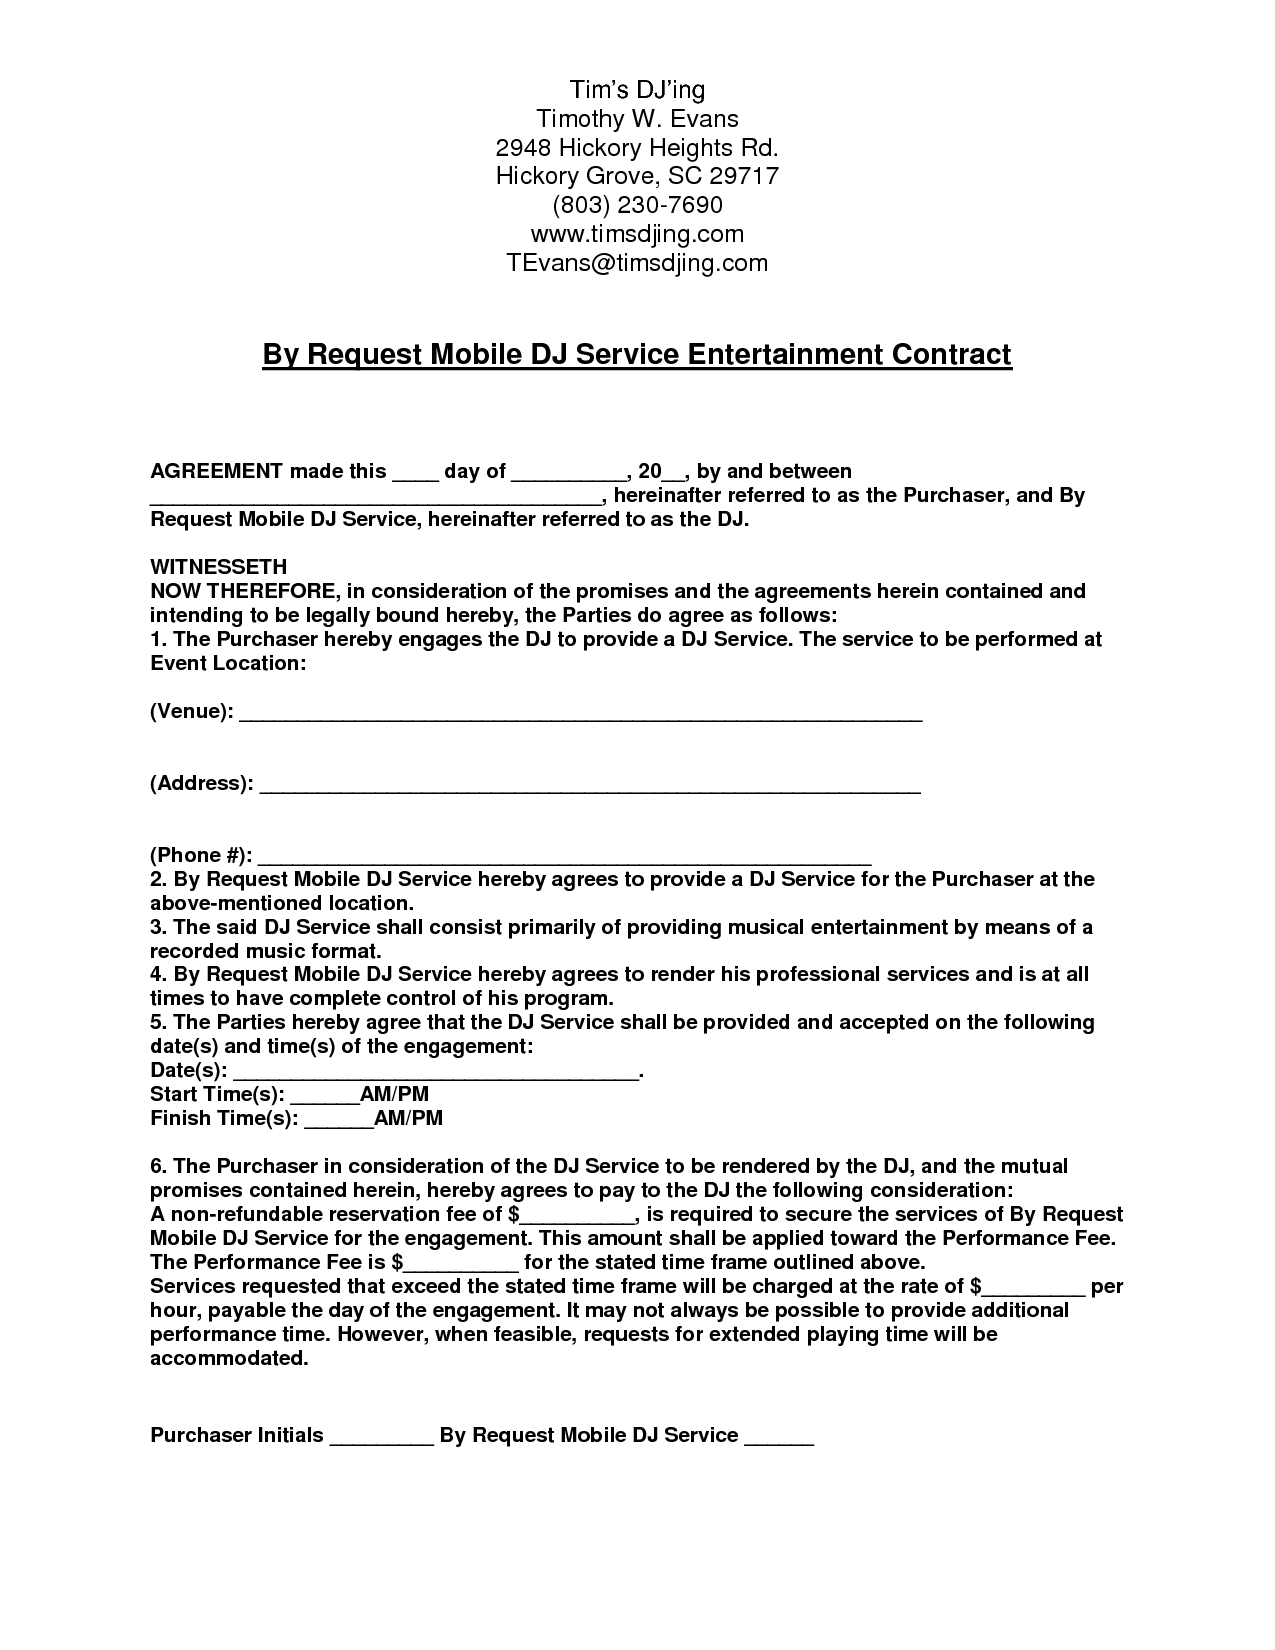 Mobile dj contract by request mobile dj service for Mobile dj contract template